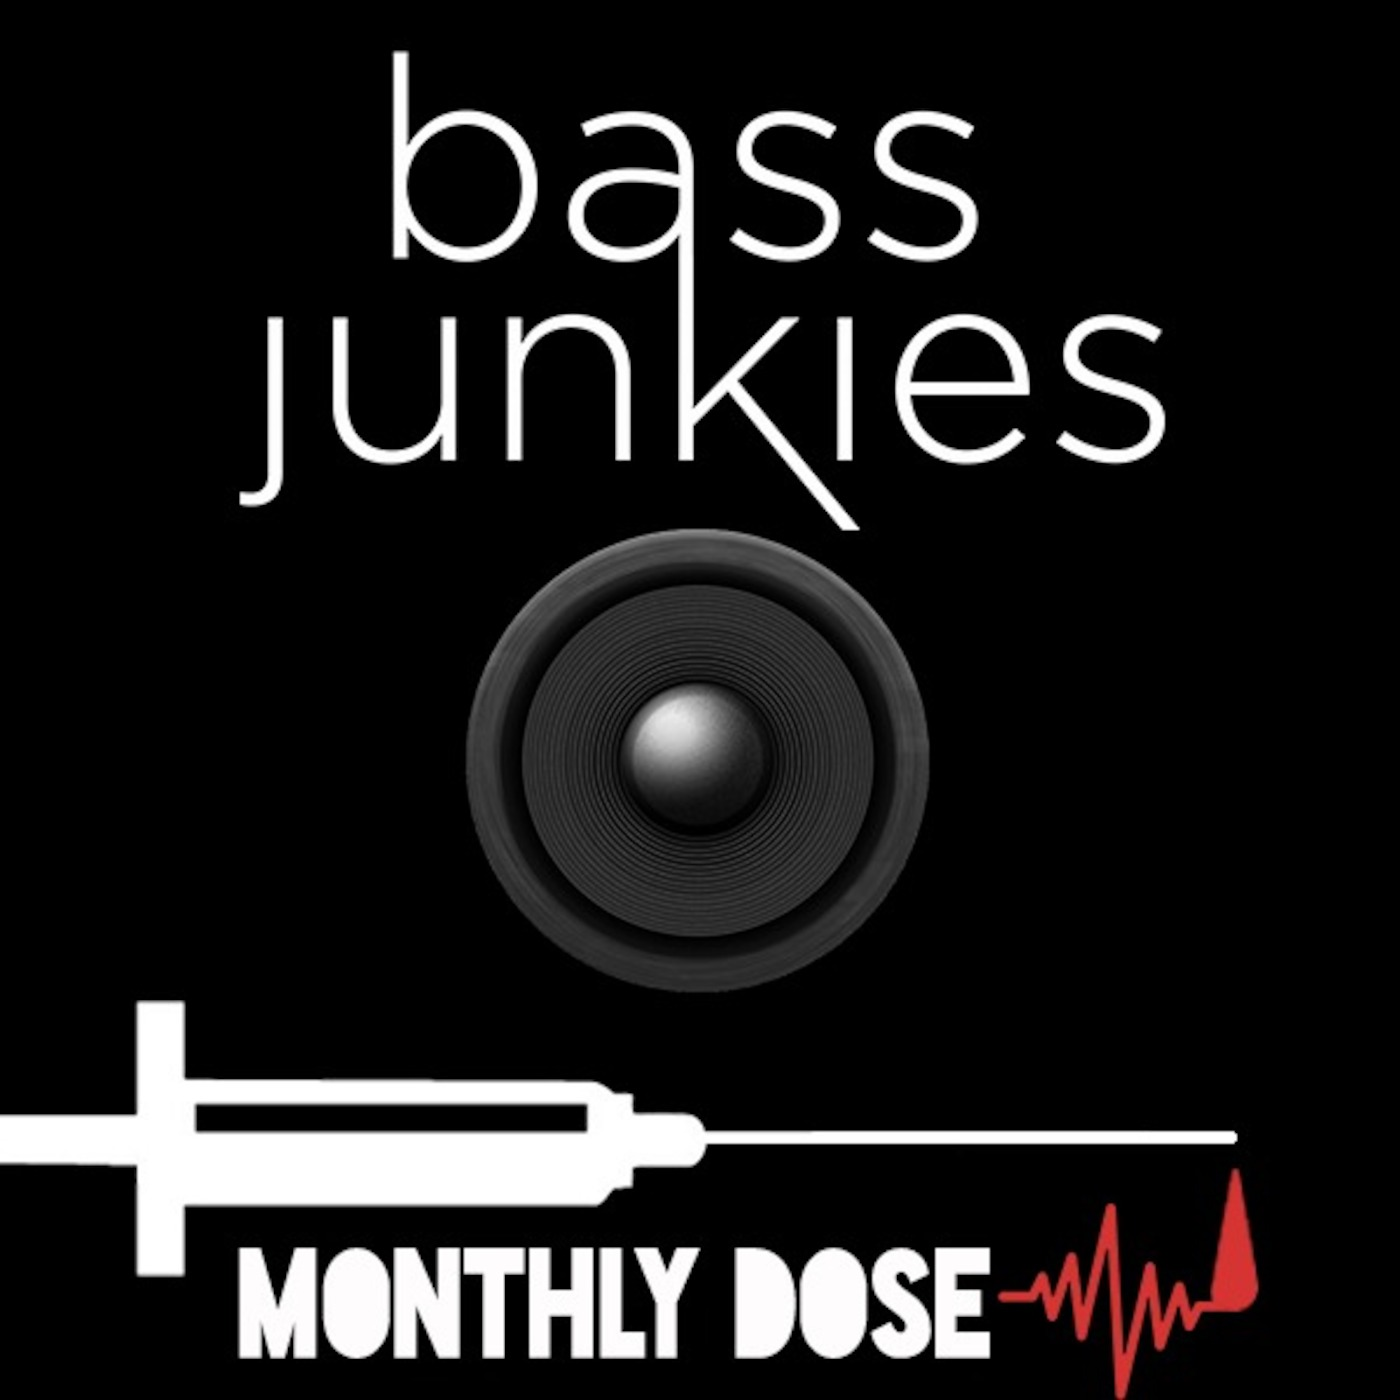 Bass Junkies Monthly Dose